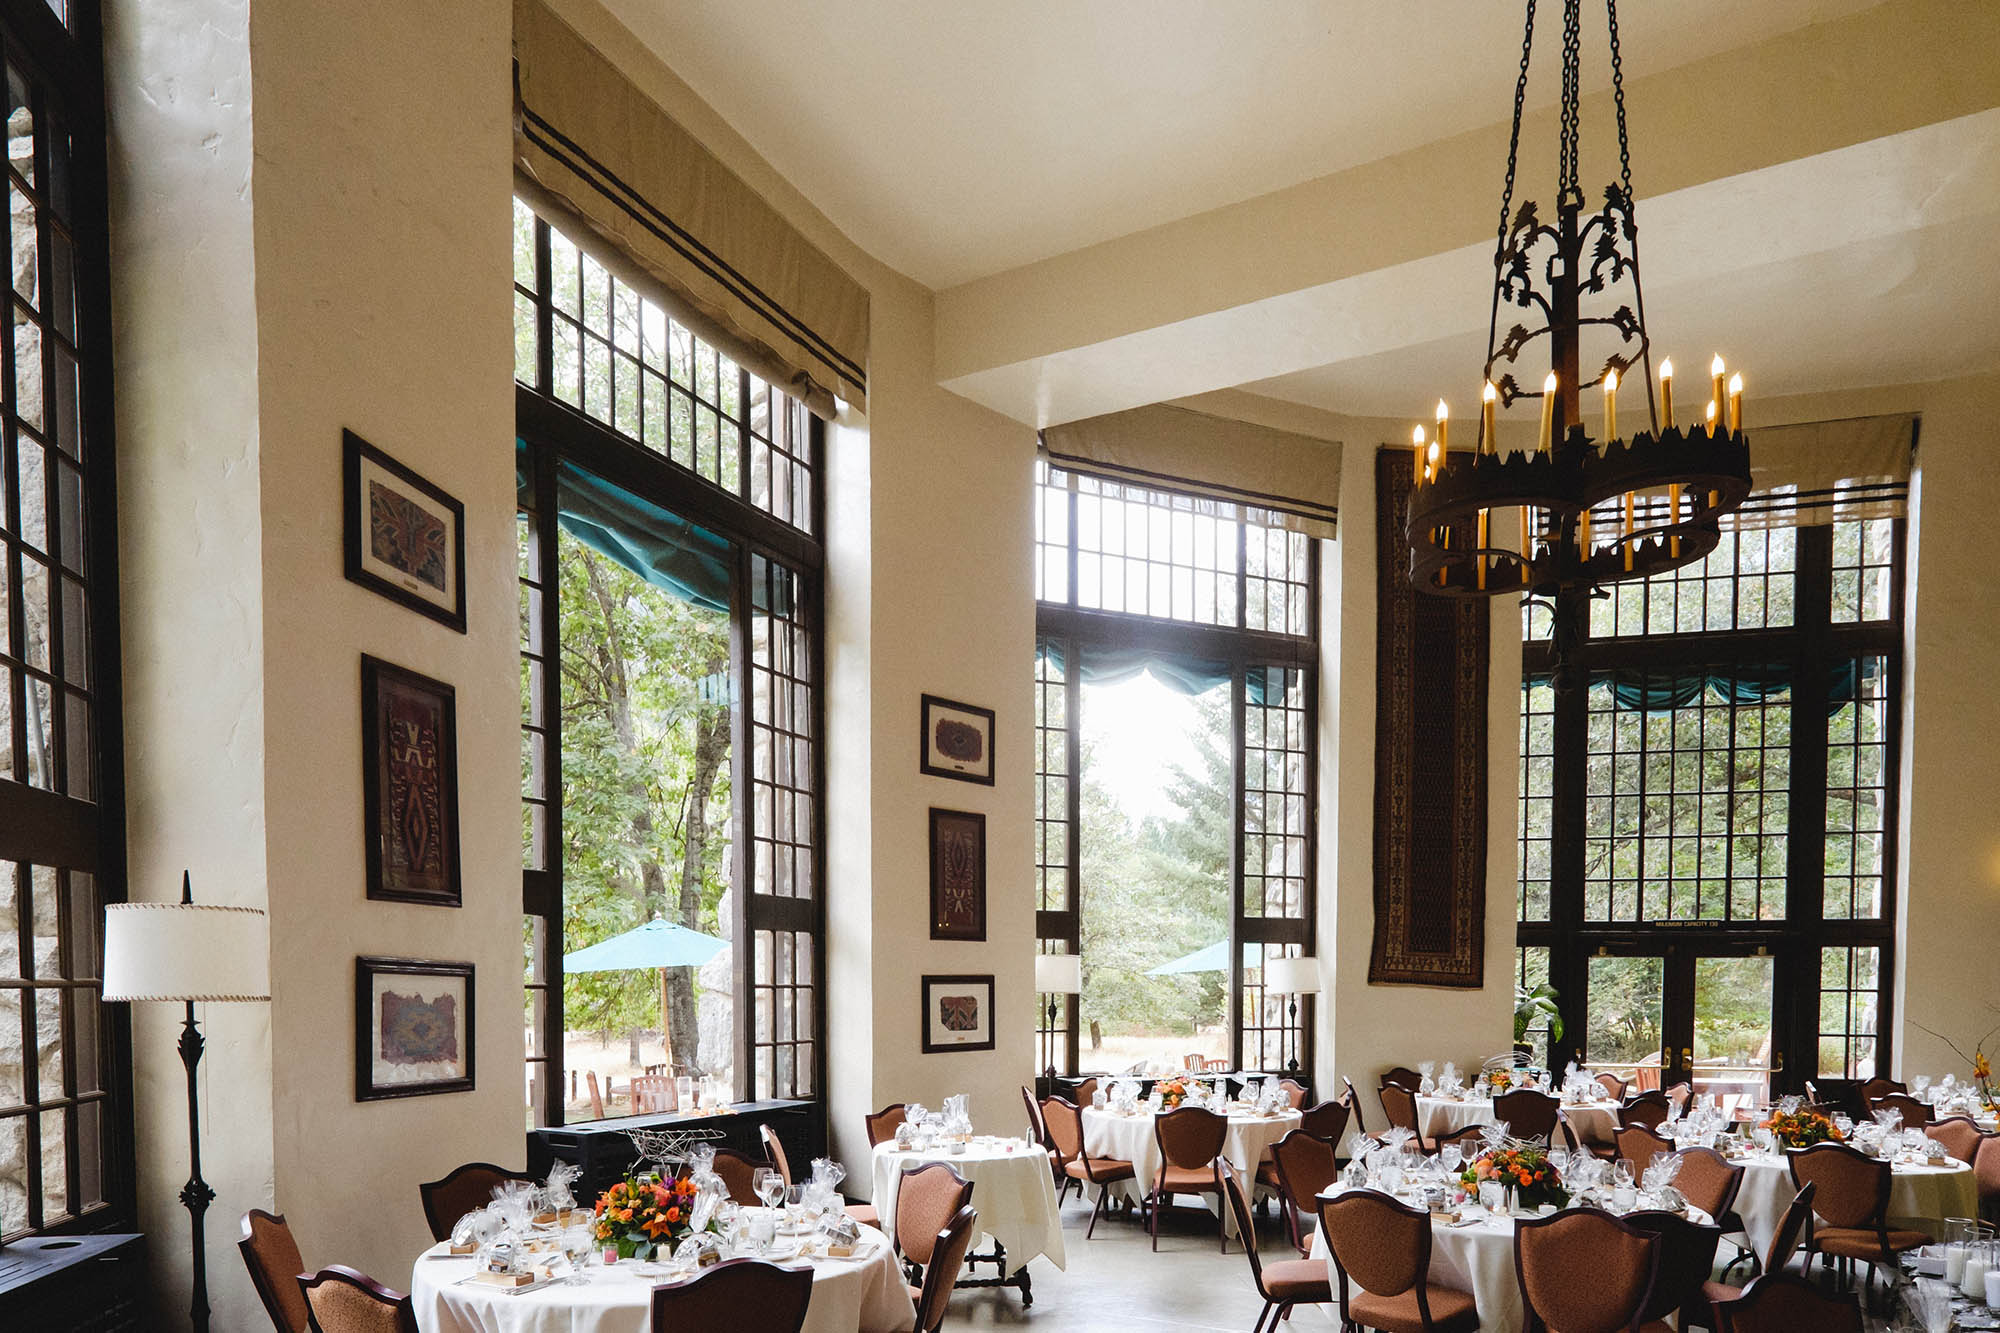 ahwahnee hotel dining room. The Ahwahnee Hotel Dining Room